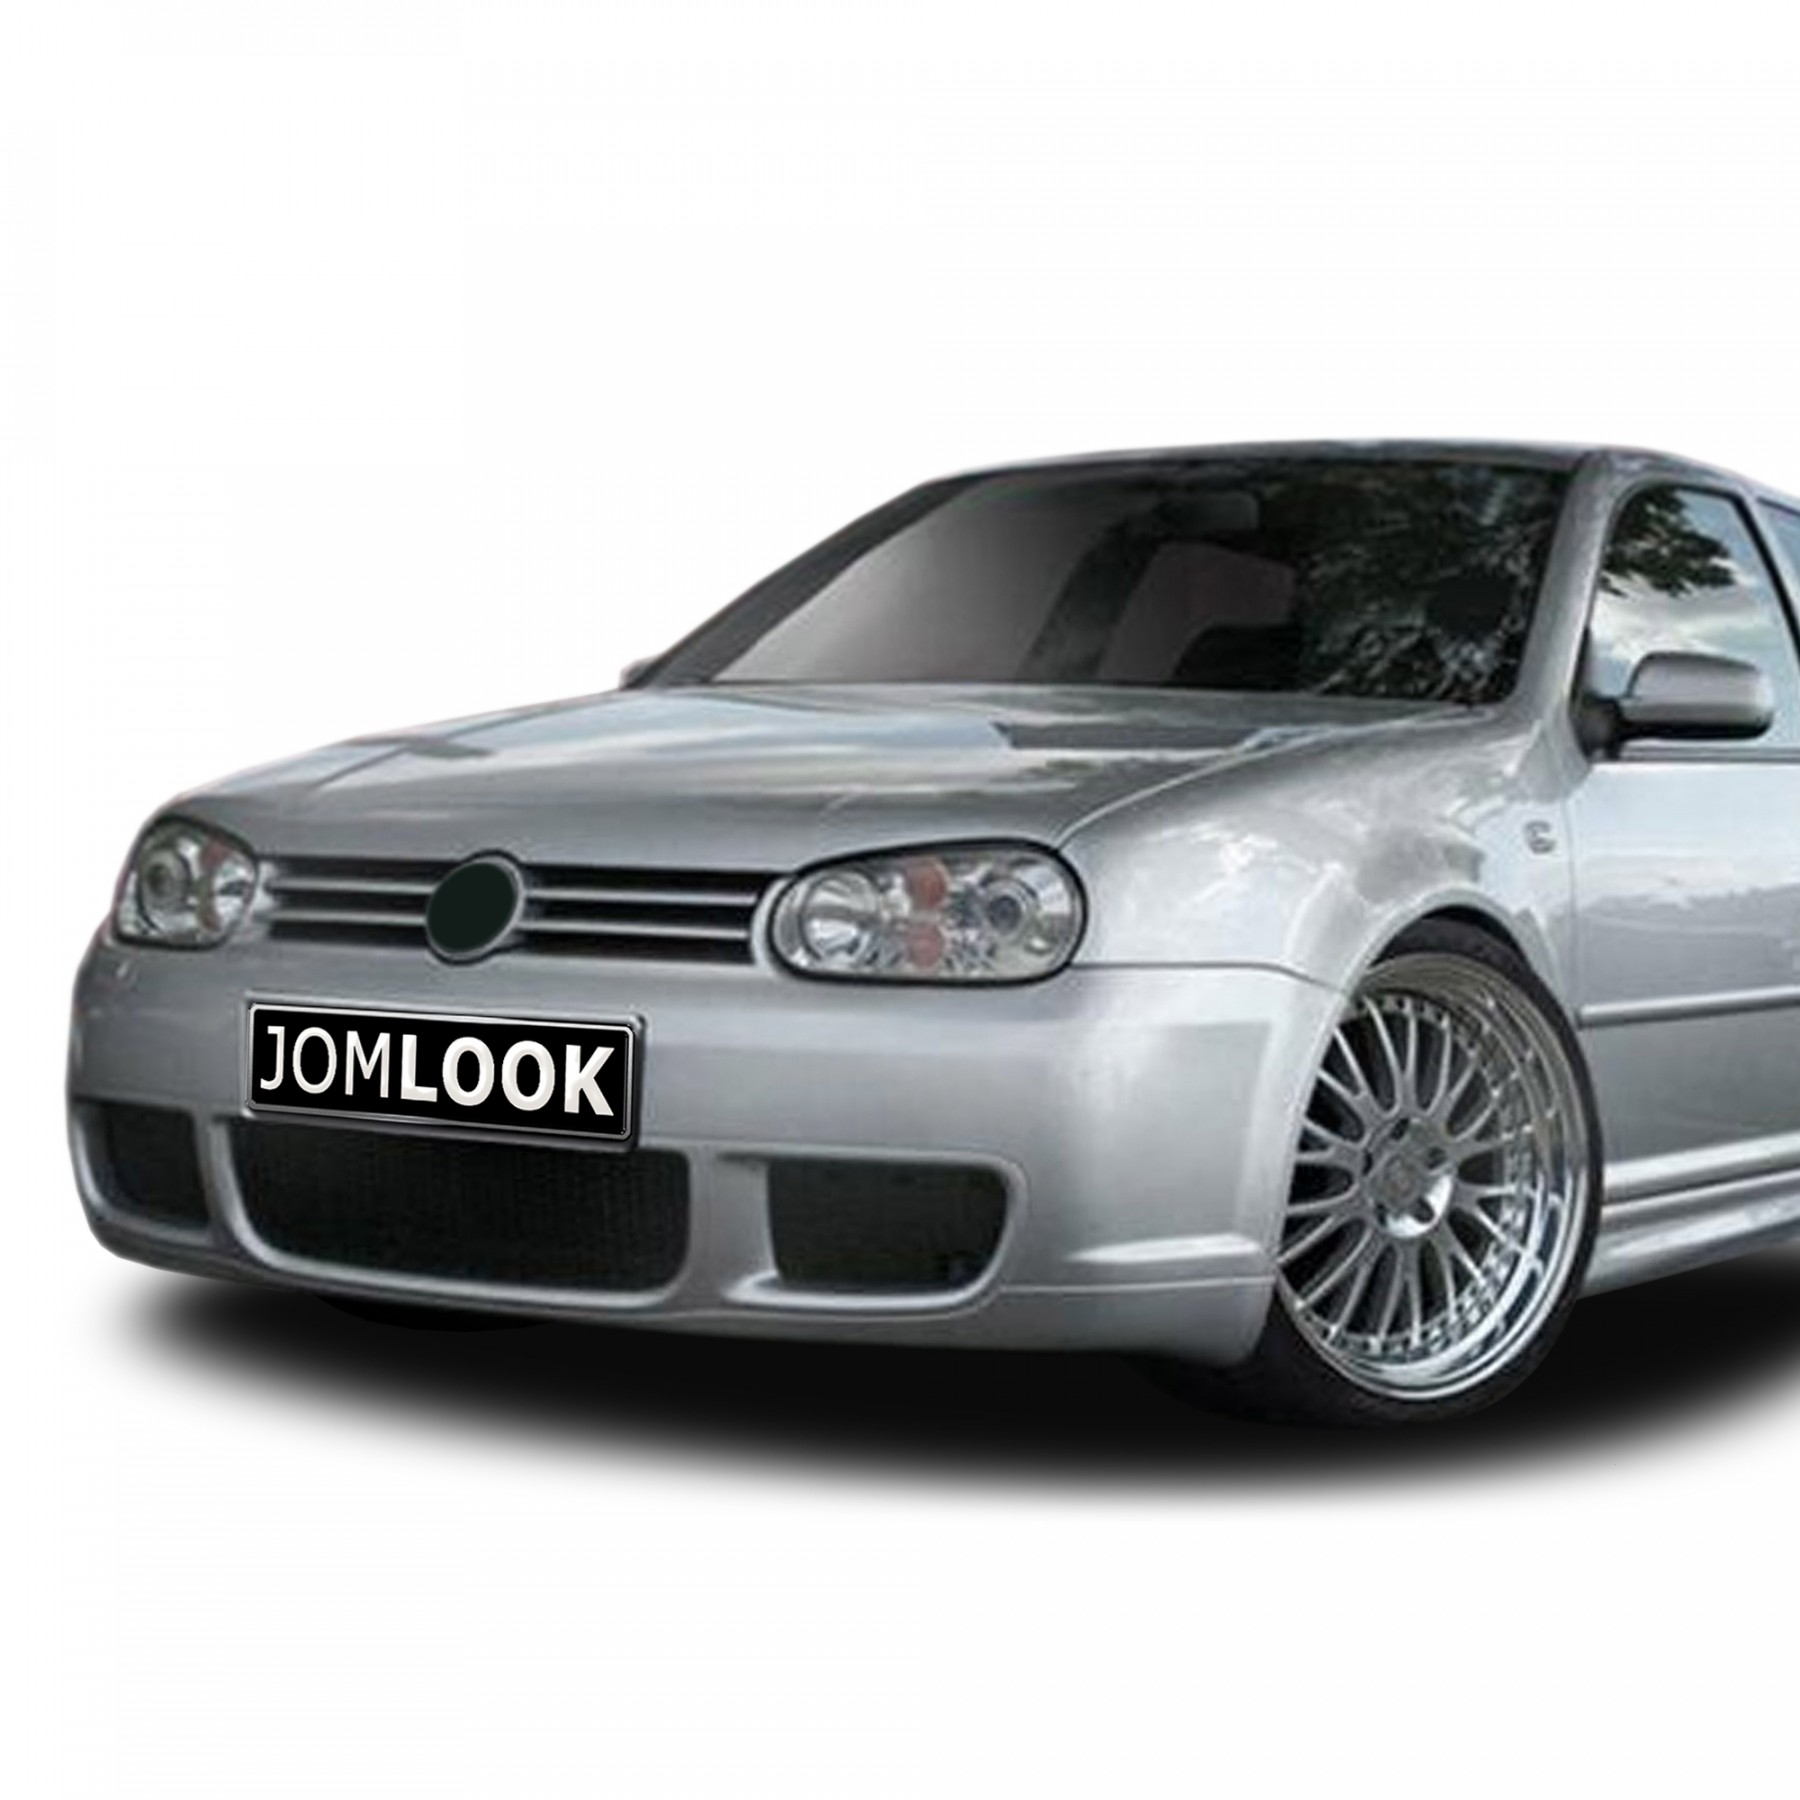 r32 look bodykit vw golf 4. Black Bedroom Furniture Sets. Home Design Ideas